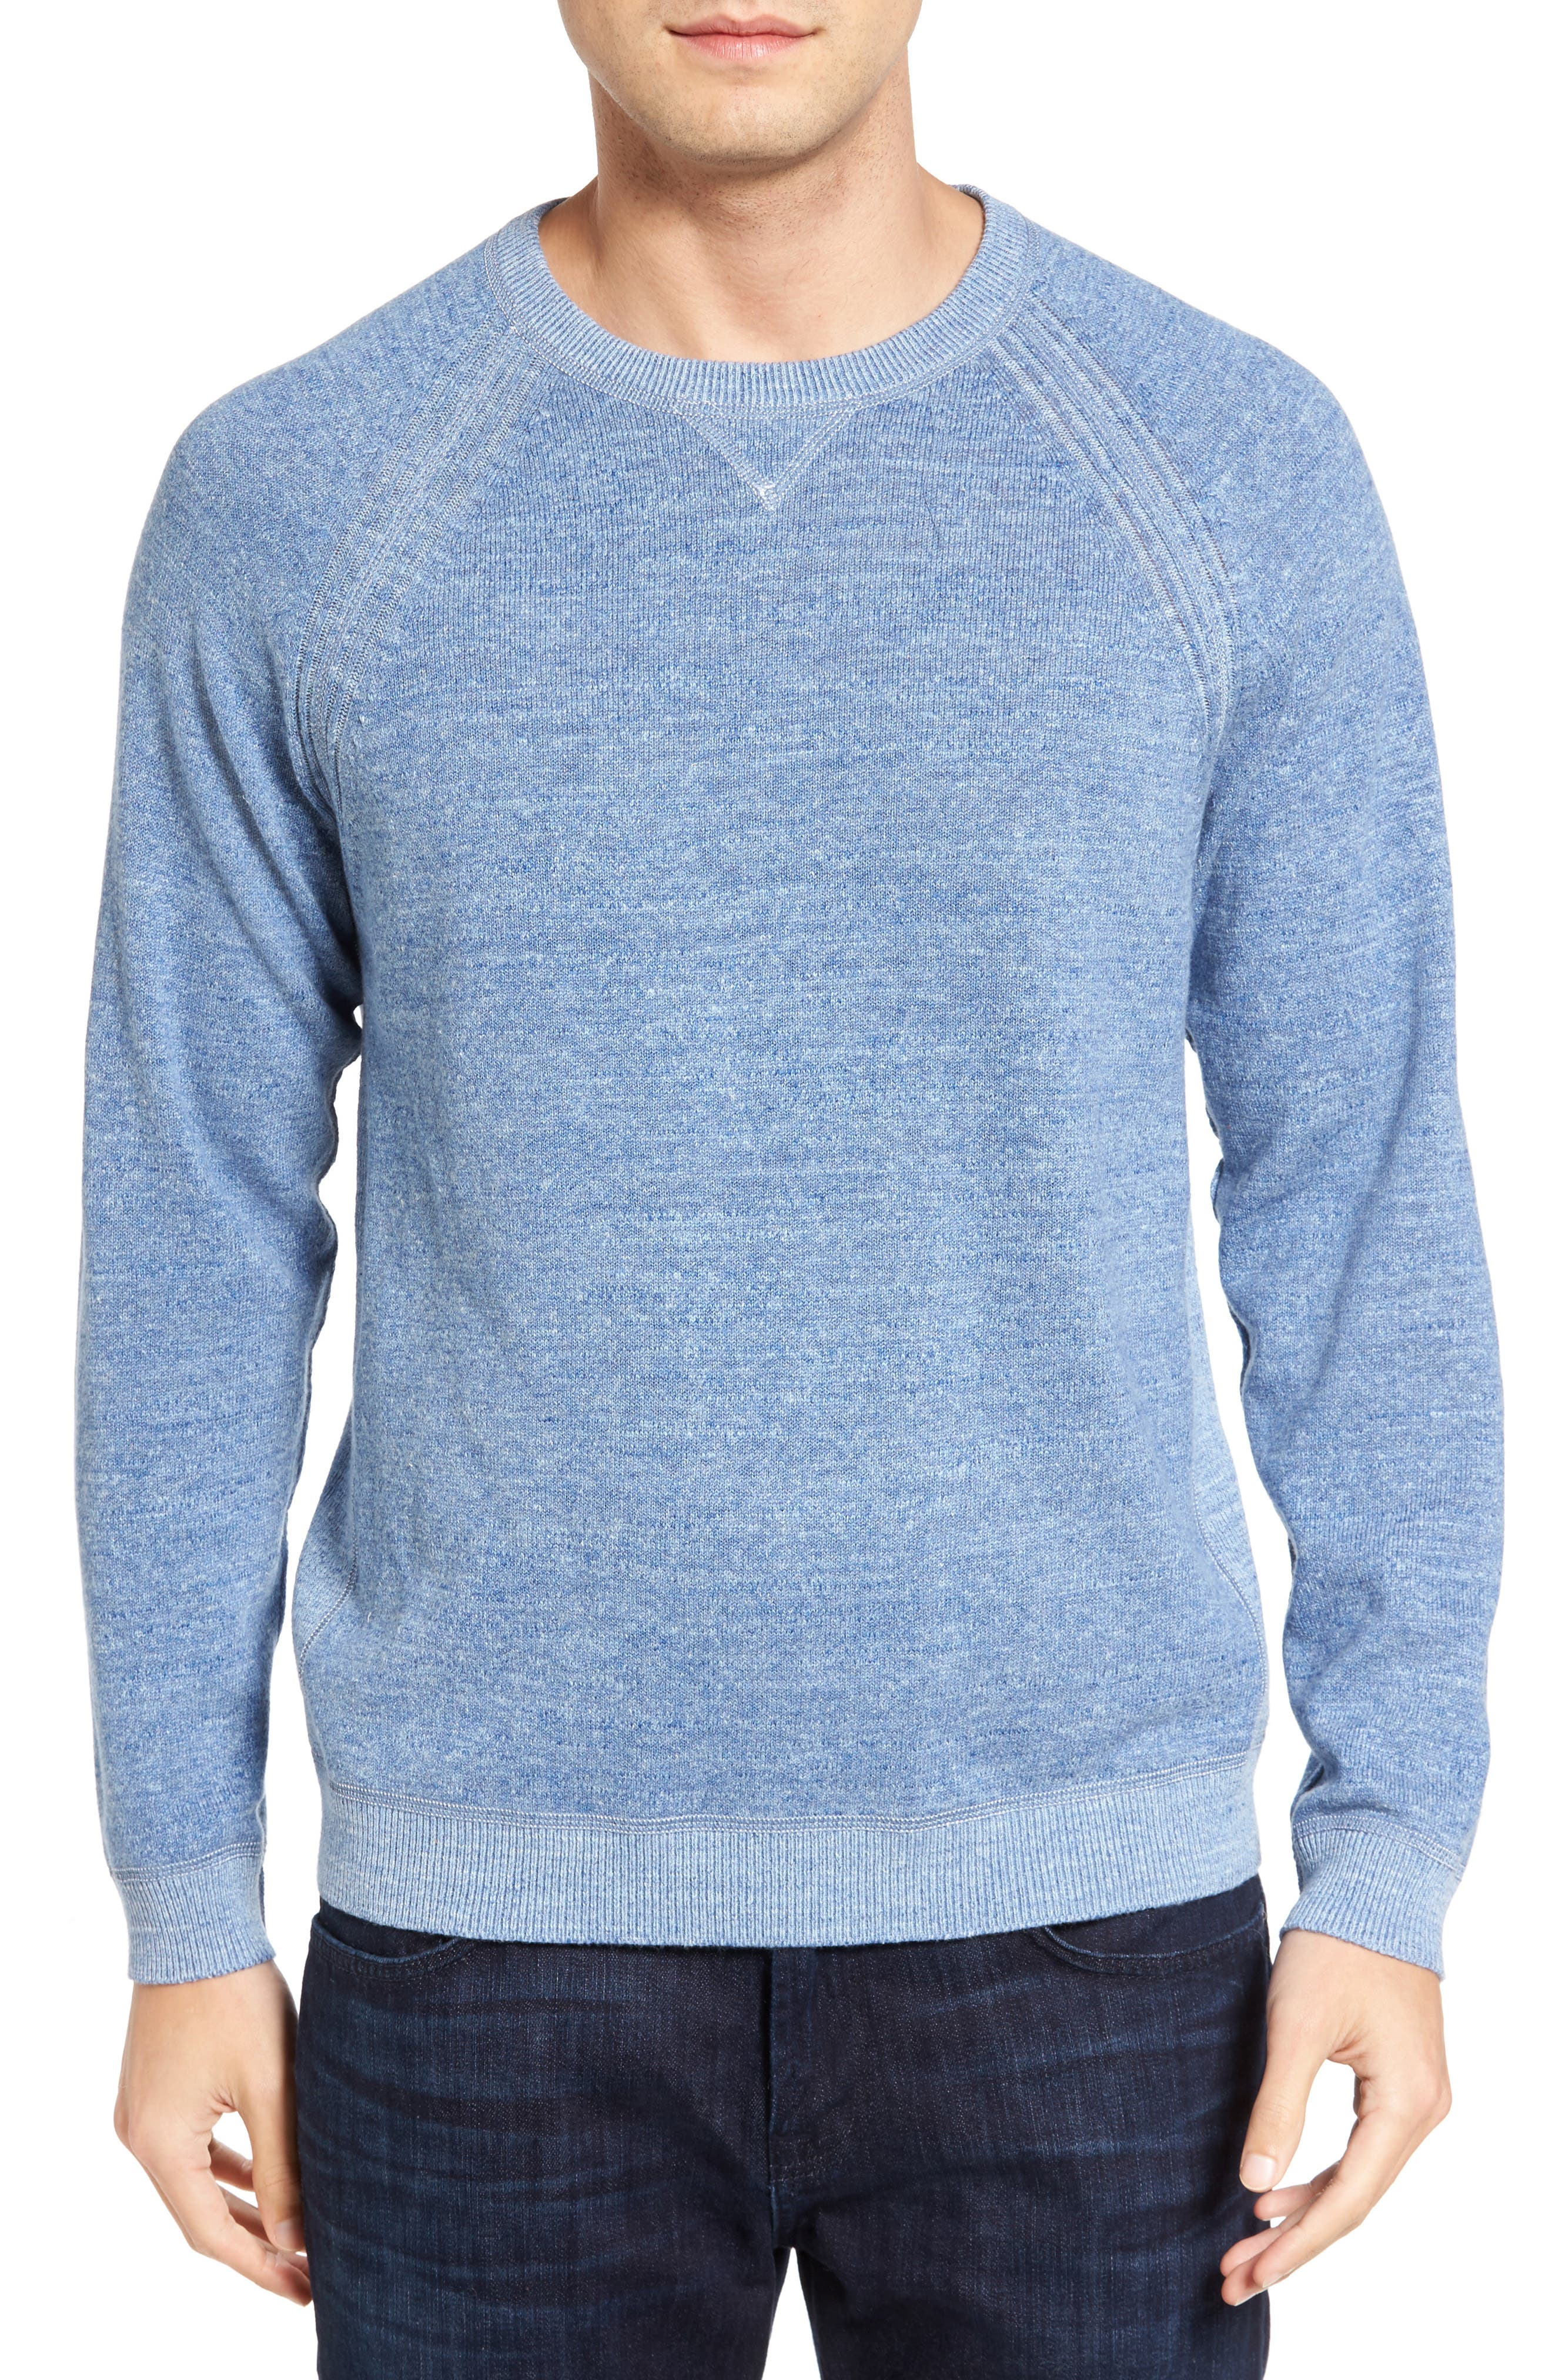 Sandy Bay Reversible Crewneck Sweater,                             Alternate thumbnail 2, color,                             100